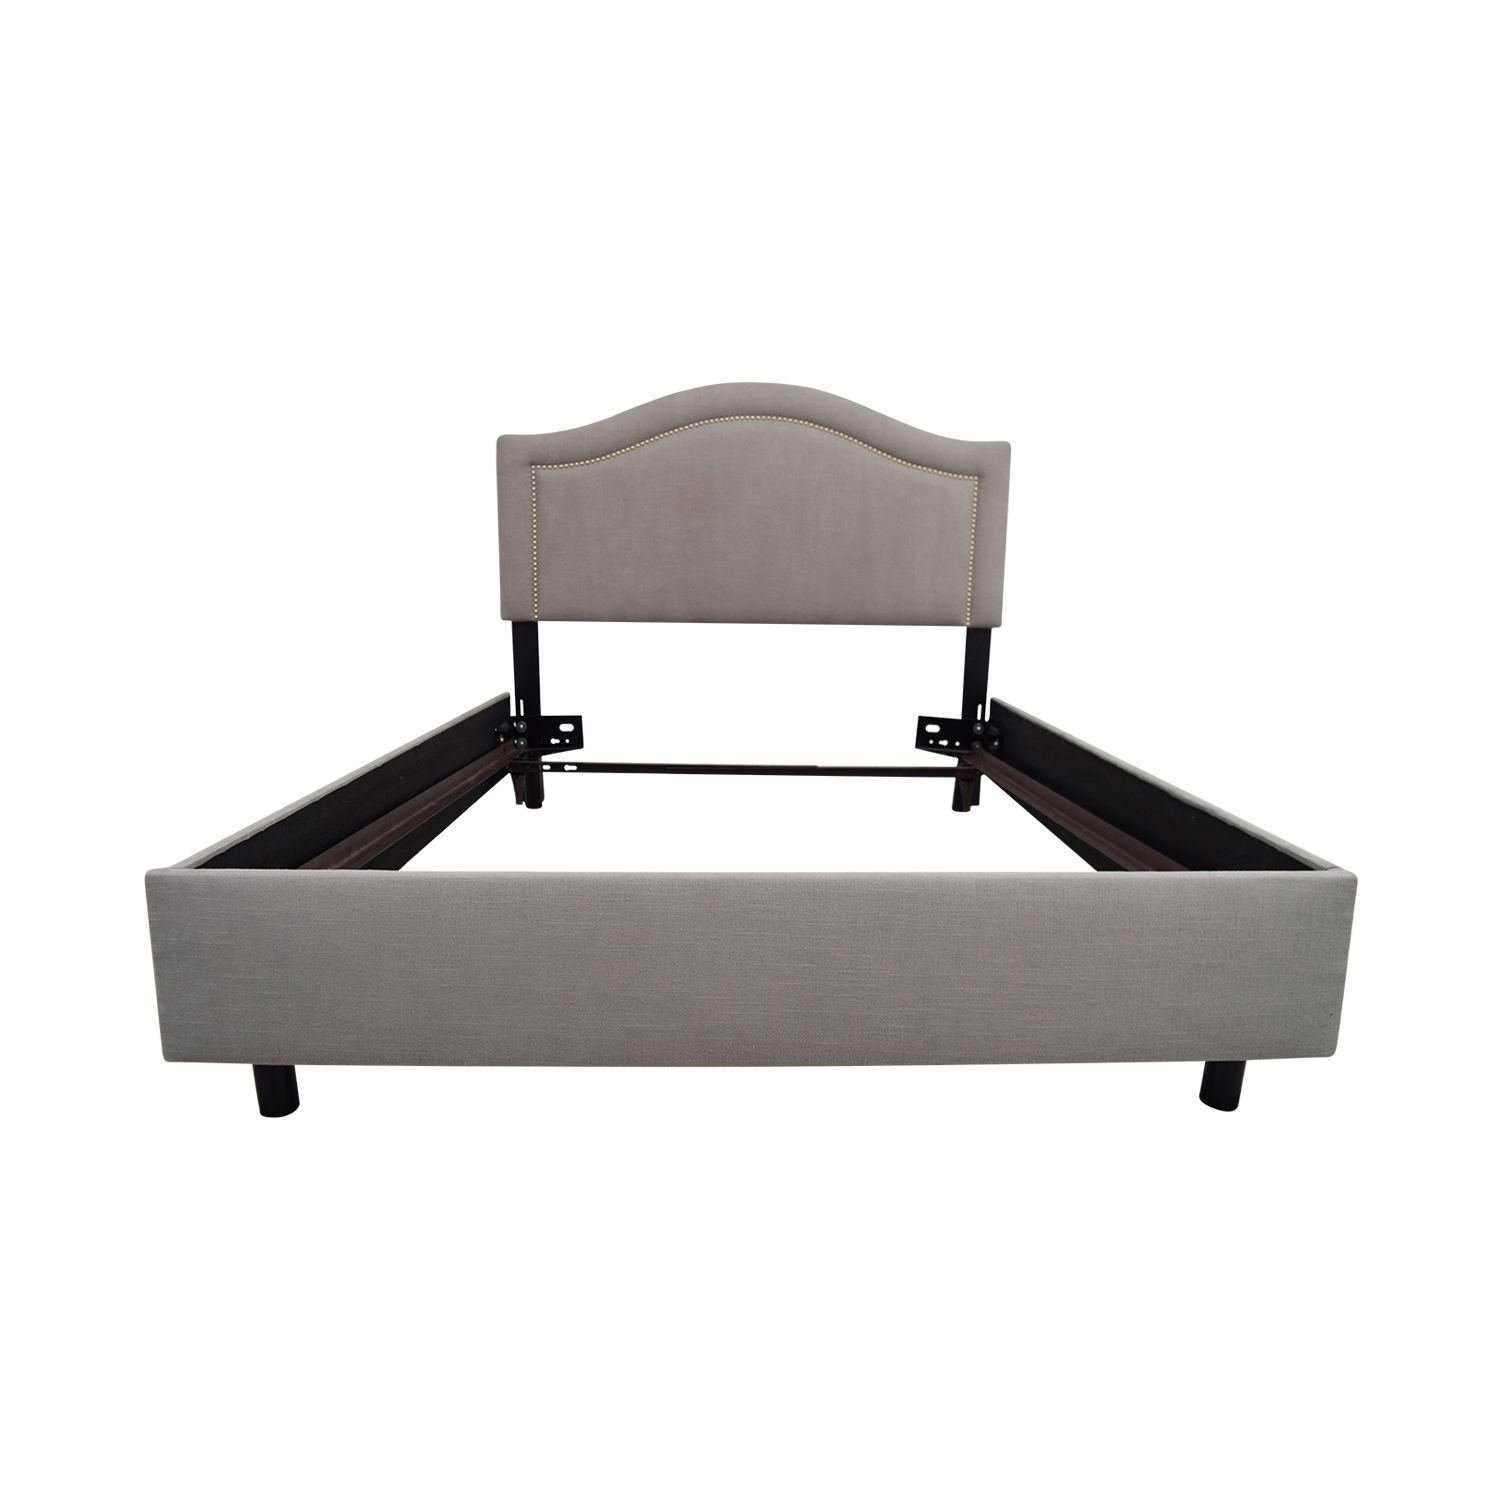 41 Off One Kings Lane Grey Fabric Full Size Bed Frame Beds